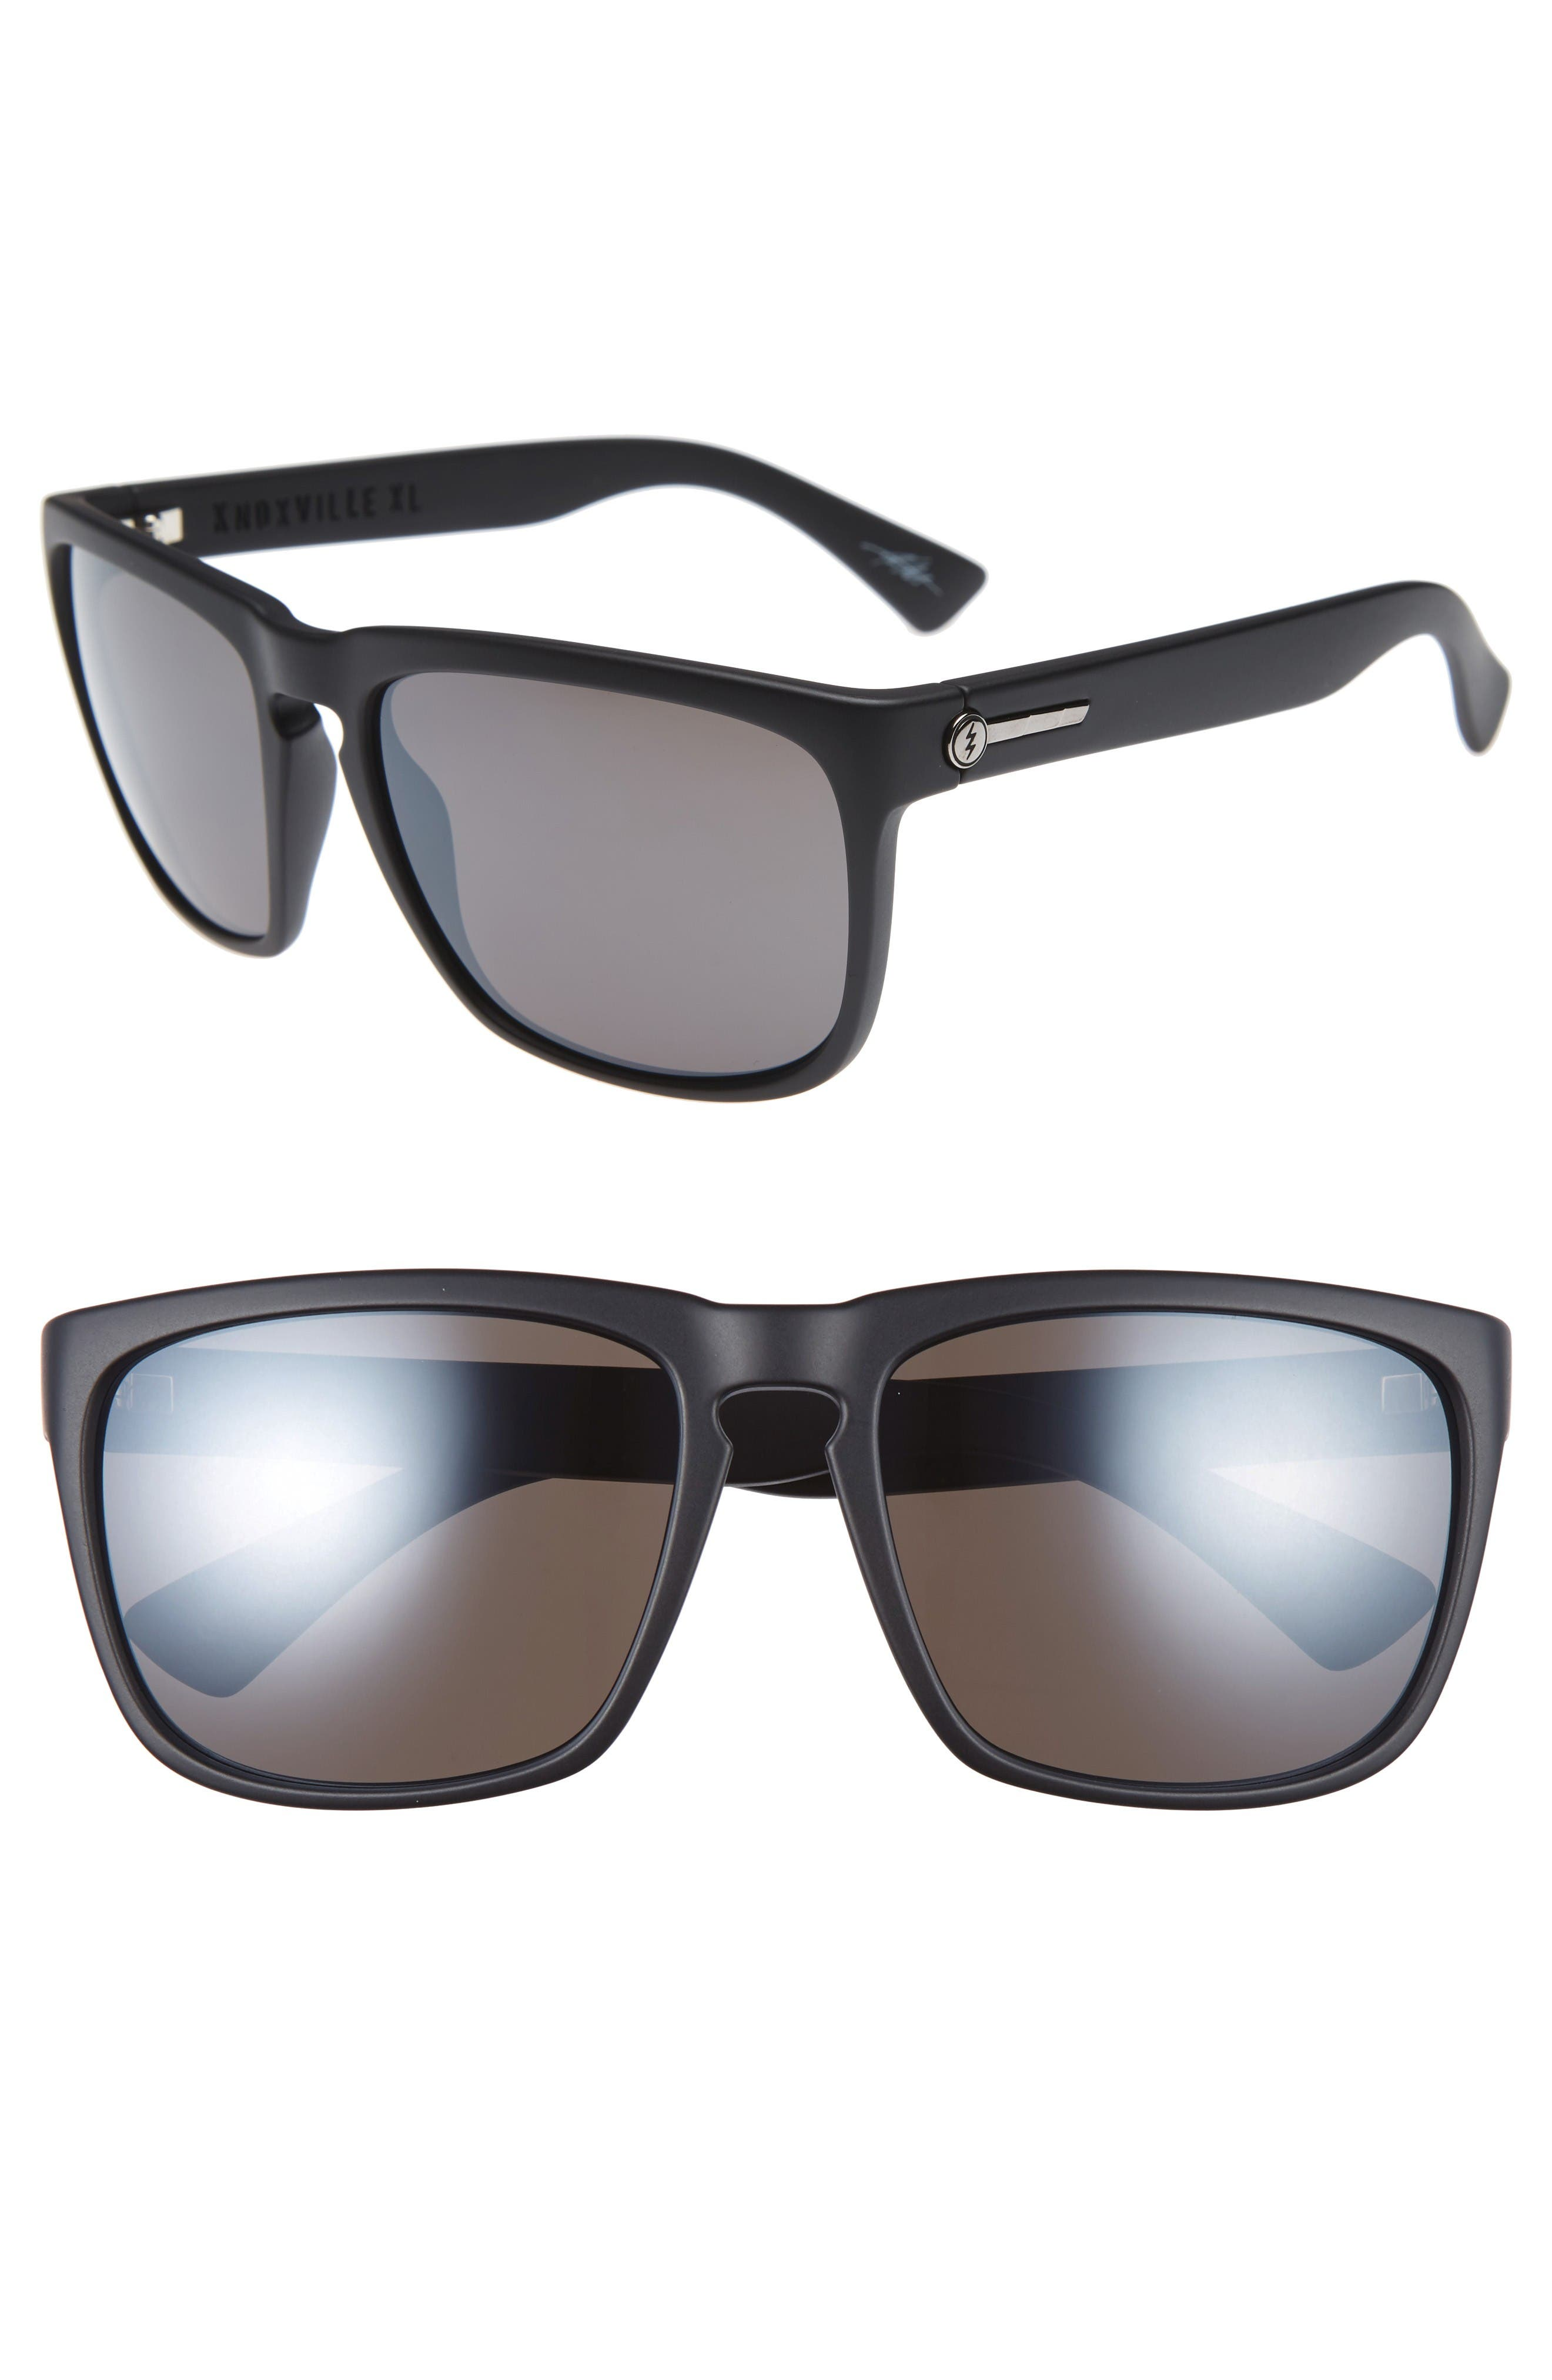 Alternate Image 1 Selected - ELECTRIC Knoxville XL 61mm Sunglasses